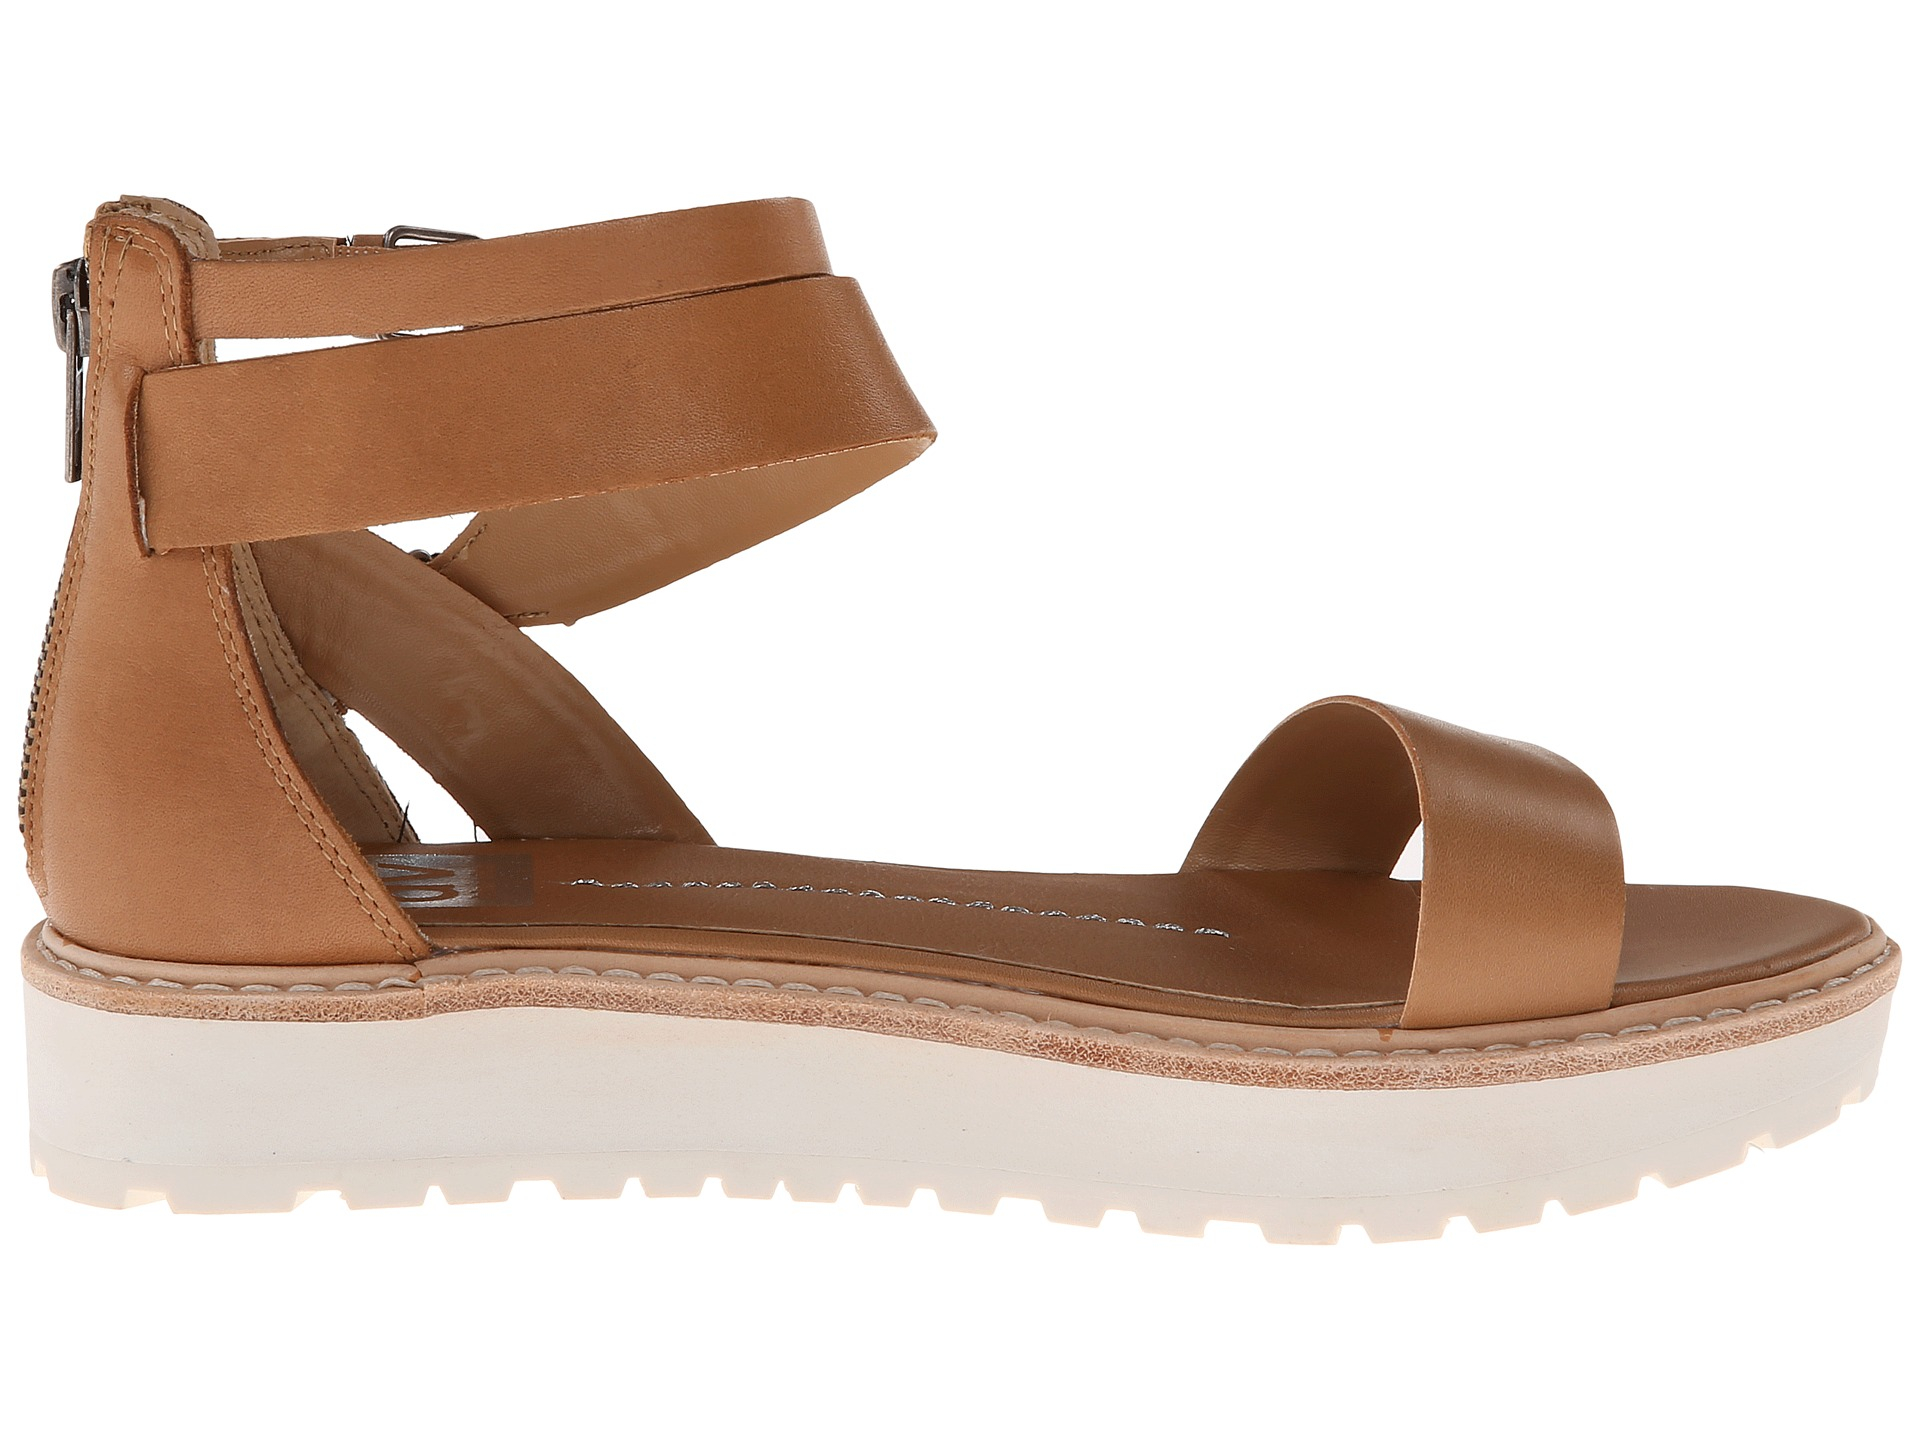 Dolce Vita Womens Nelly Nude Leather Sandals Size 10